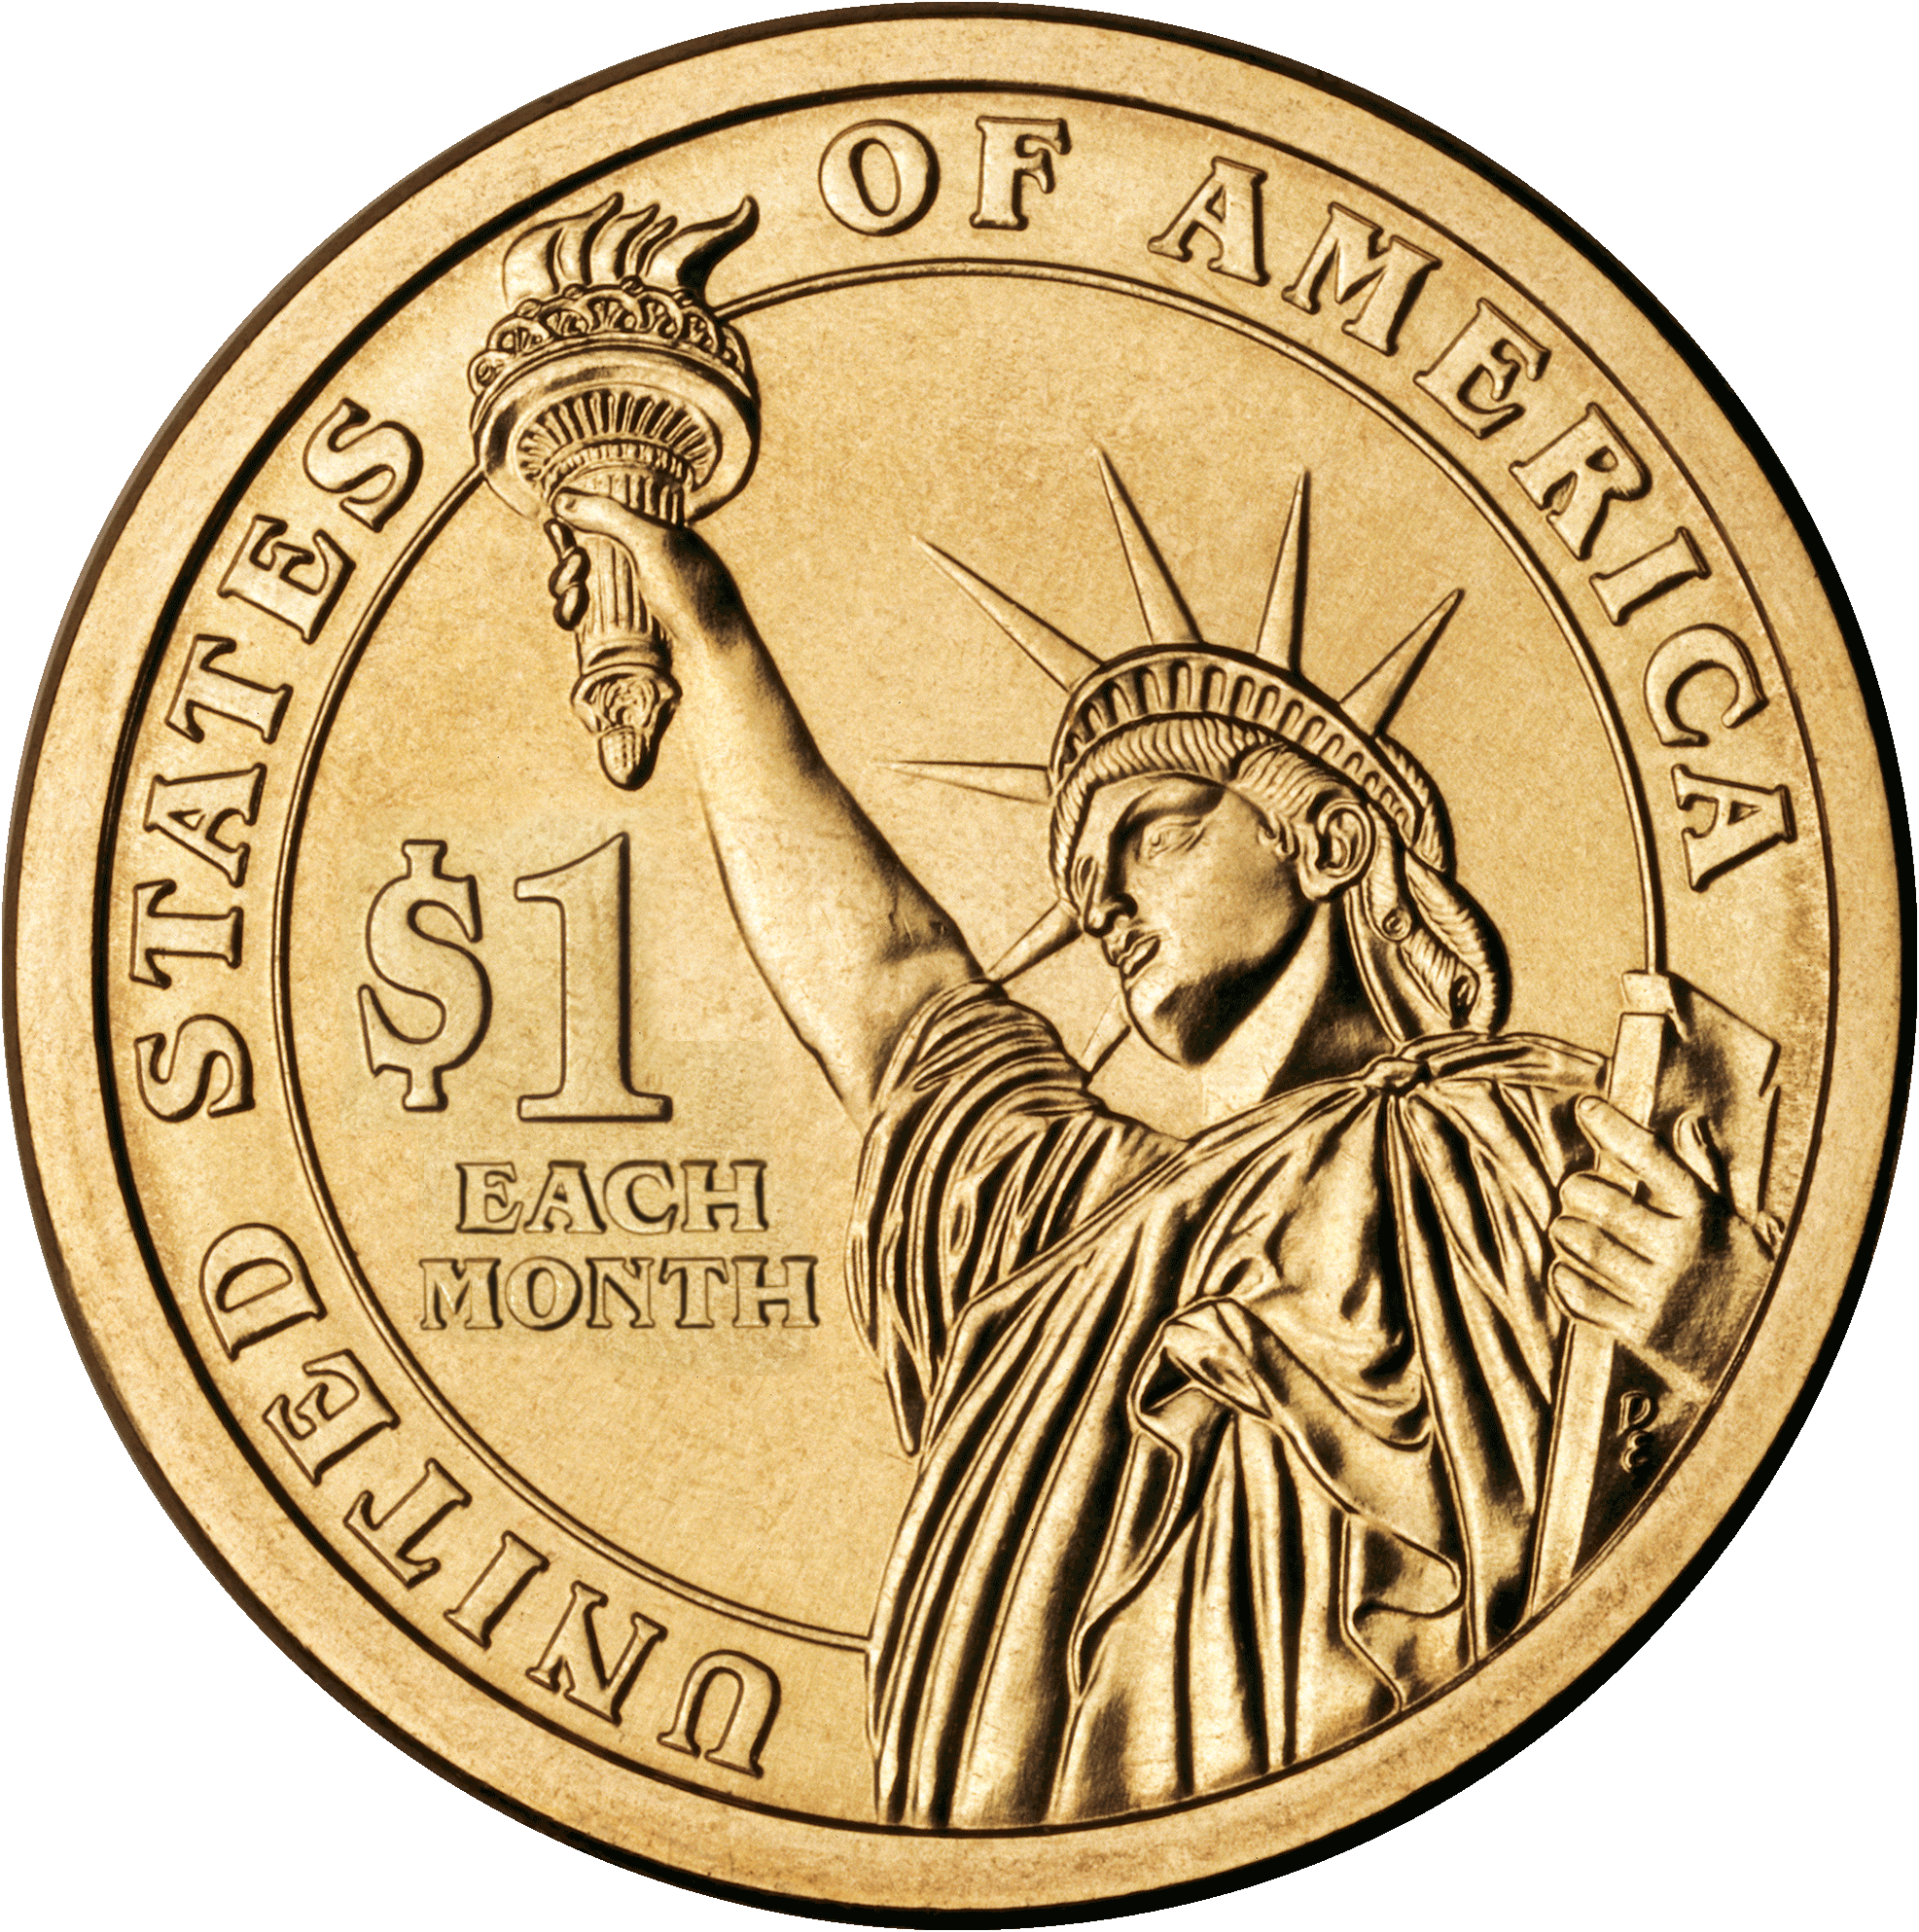 File:Cash Flow Token Coin (One Dollar Each Month).png - Coin HD PNG